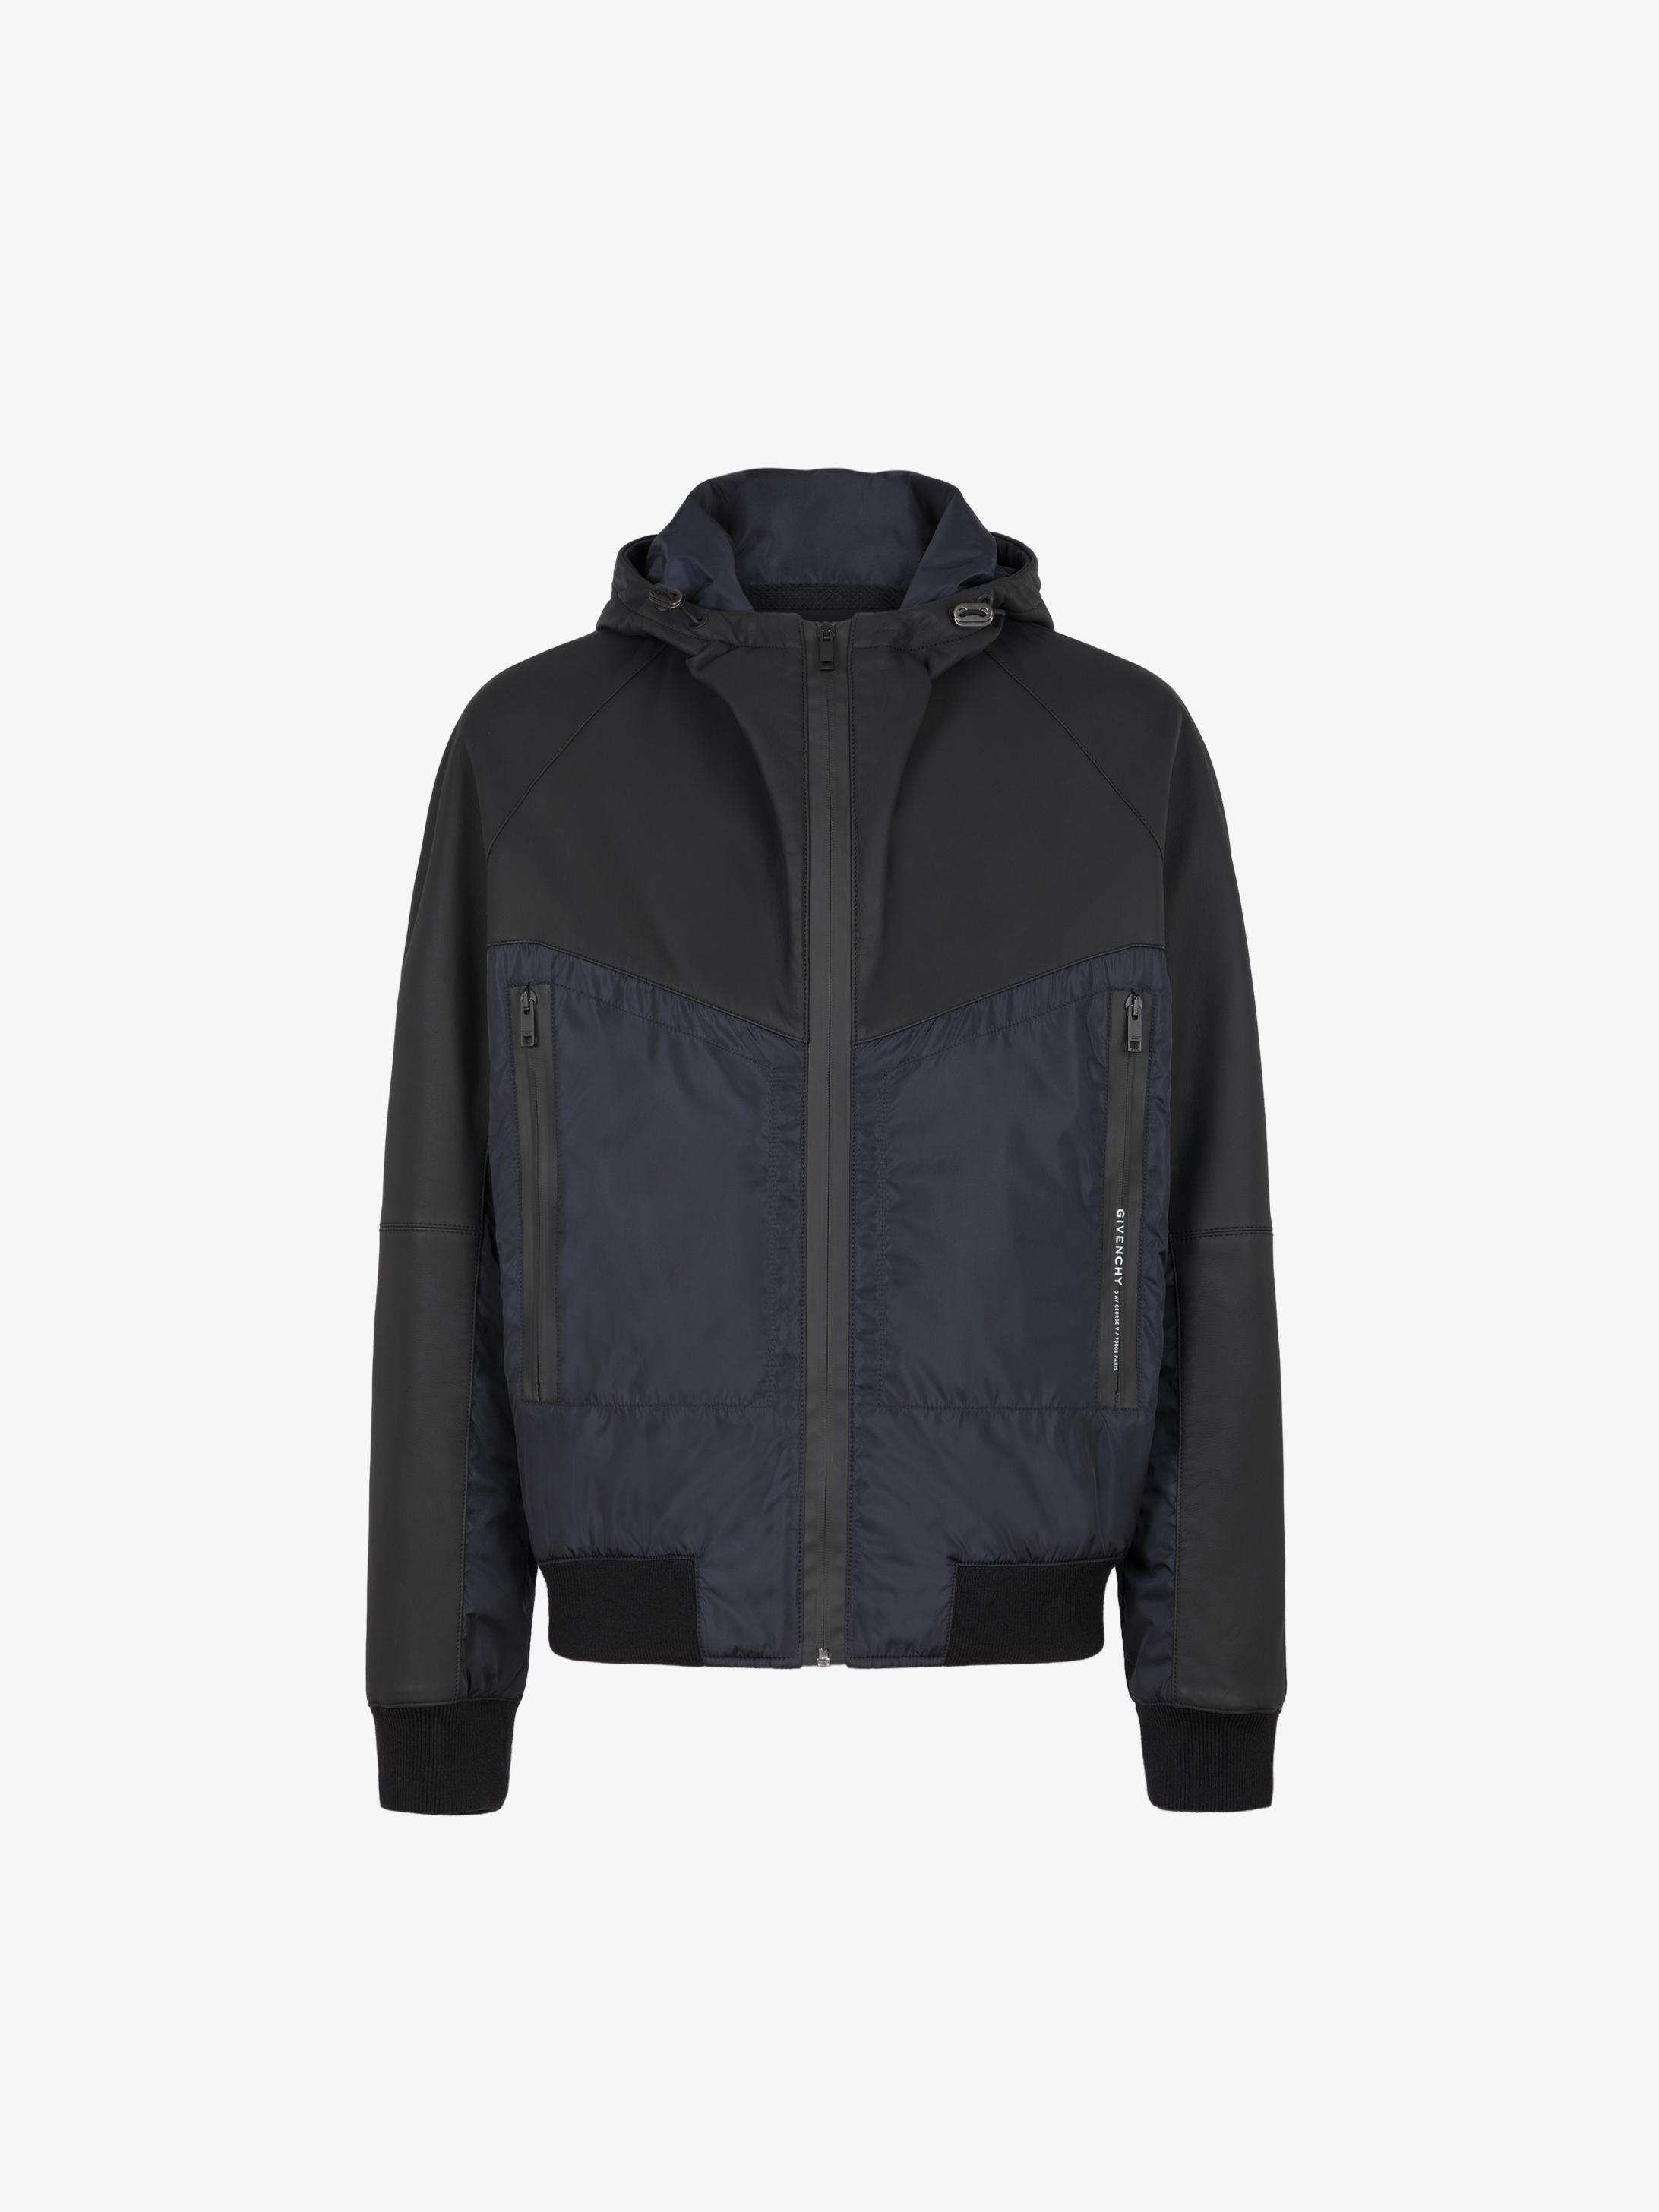 GIVENCHY PARIS jacket in leather and nylon